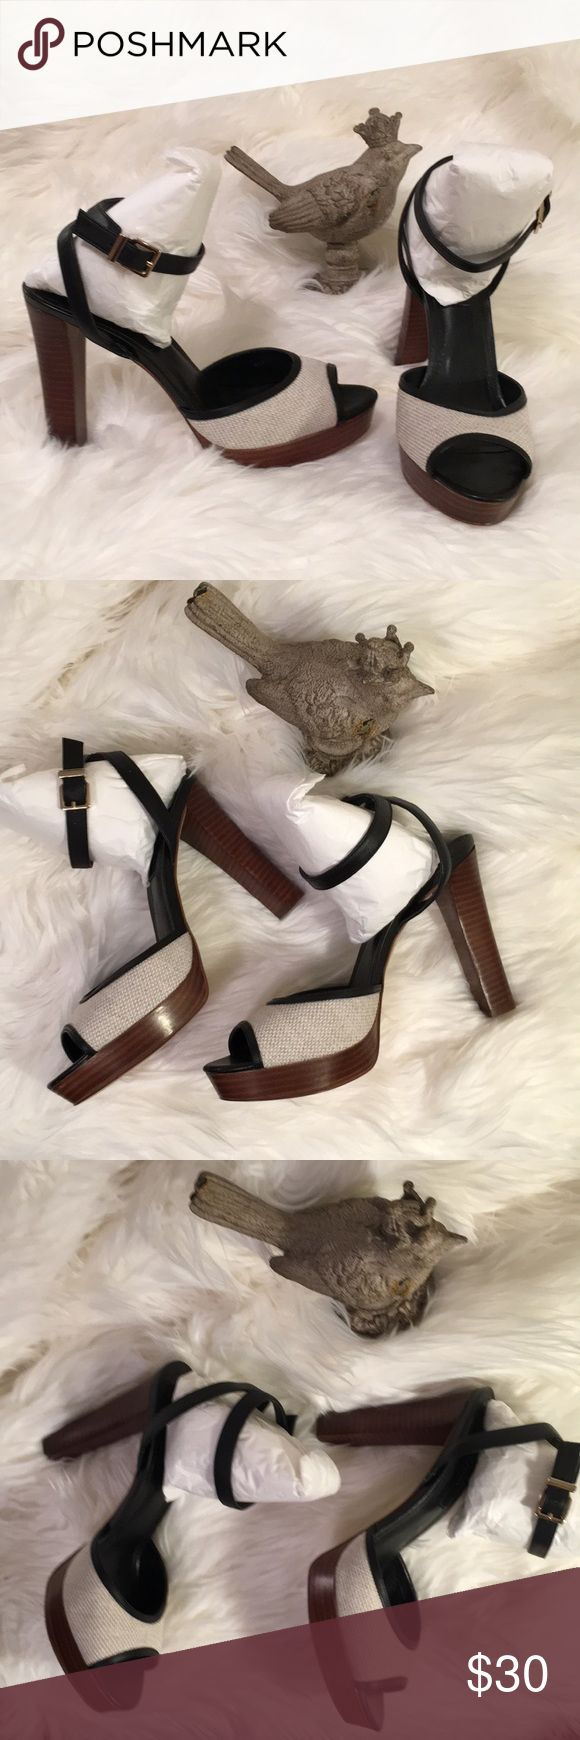 """Like NEW neutral & black heels White House Black Market heels Color can be worn with white, grey, tan.. It is very neutral. These wore once for a brief period.  They are very comfortable.  The heel is 5"""" but the front platform compensates for approximately 1 1/4"""". White House Black Market Shoes Heels"""